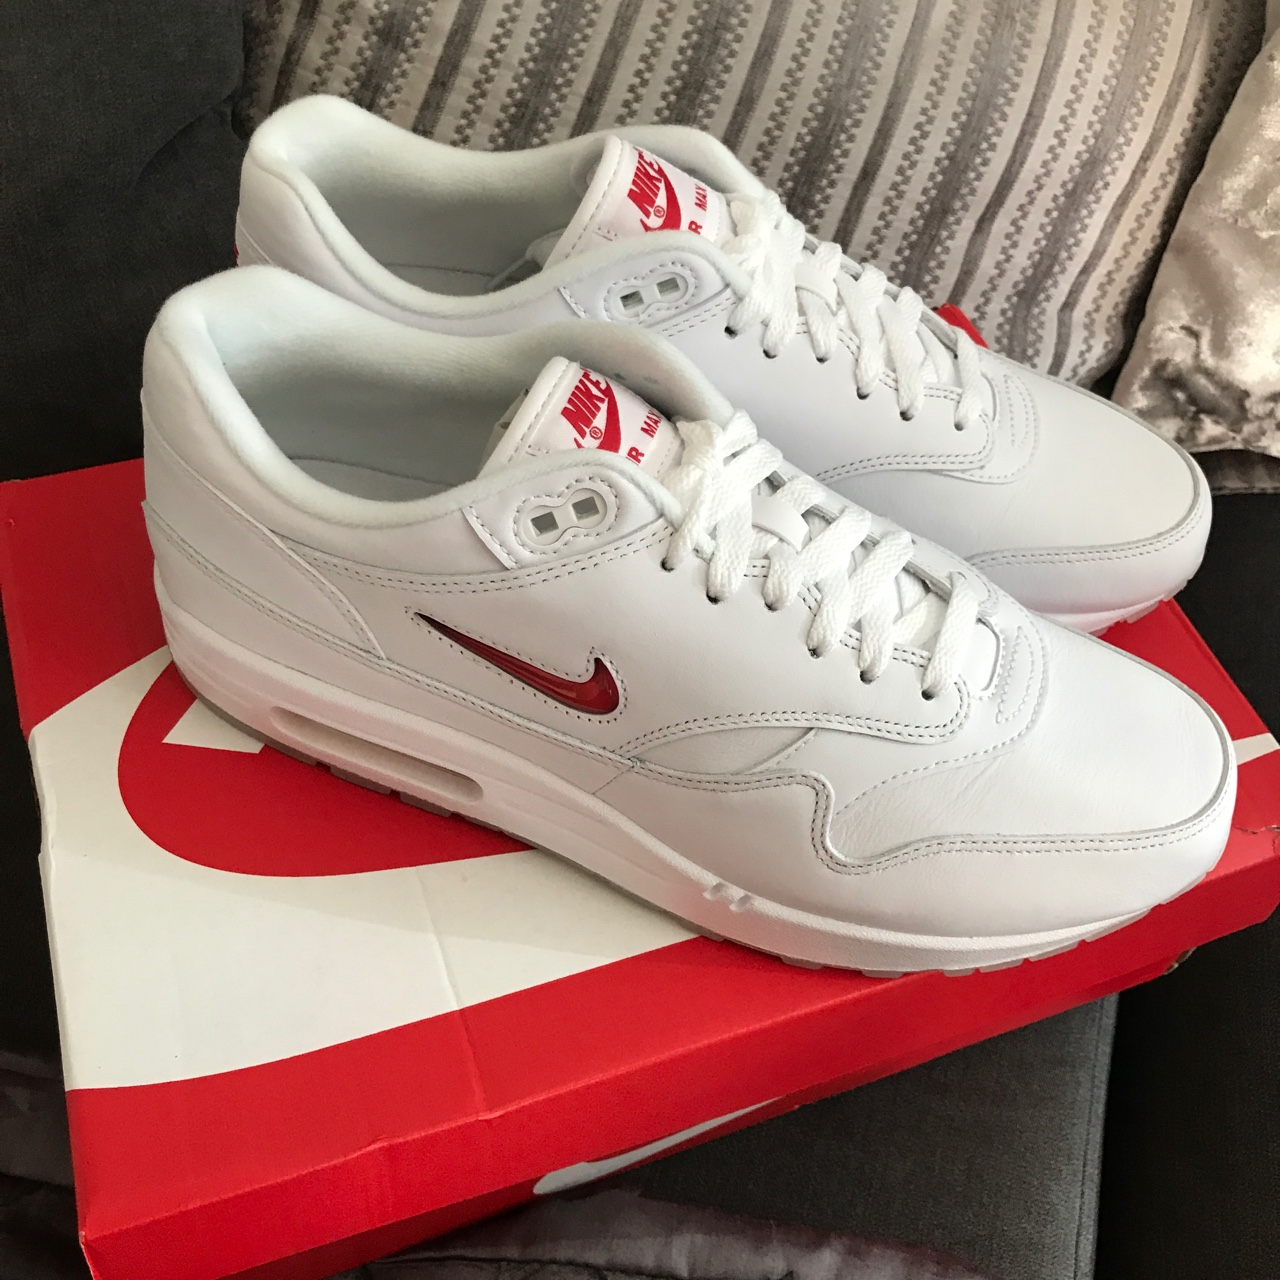 NIKE AIR MAX 1 OG RUBY RED JEWEL SIZE 9 BOXED WITH